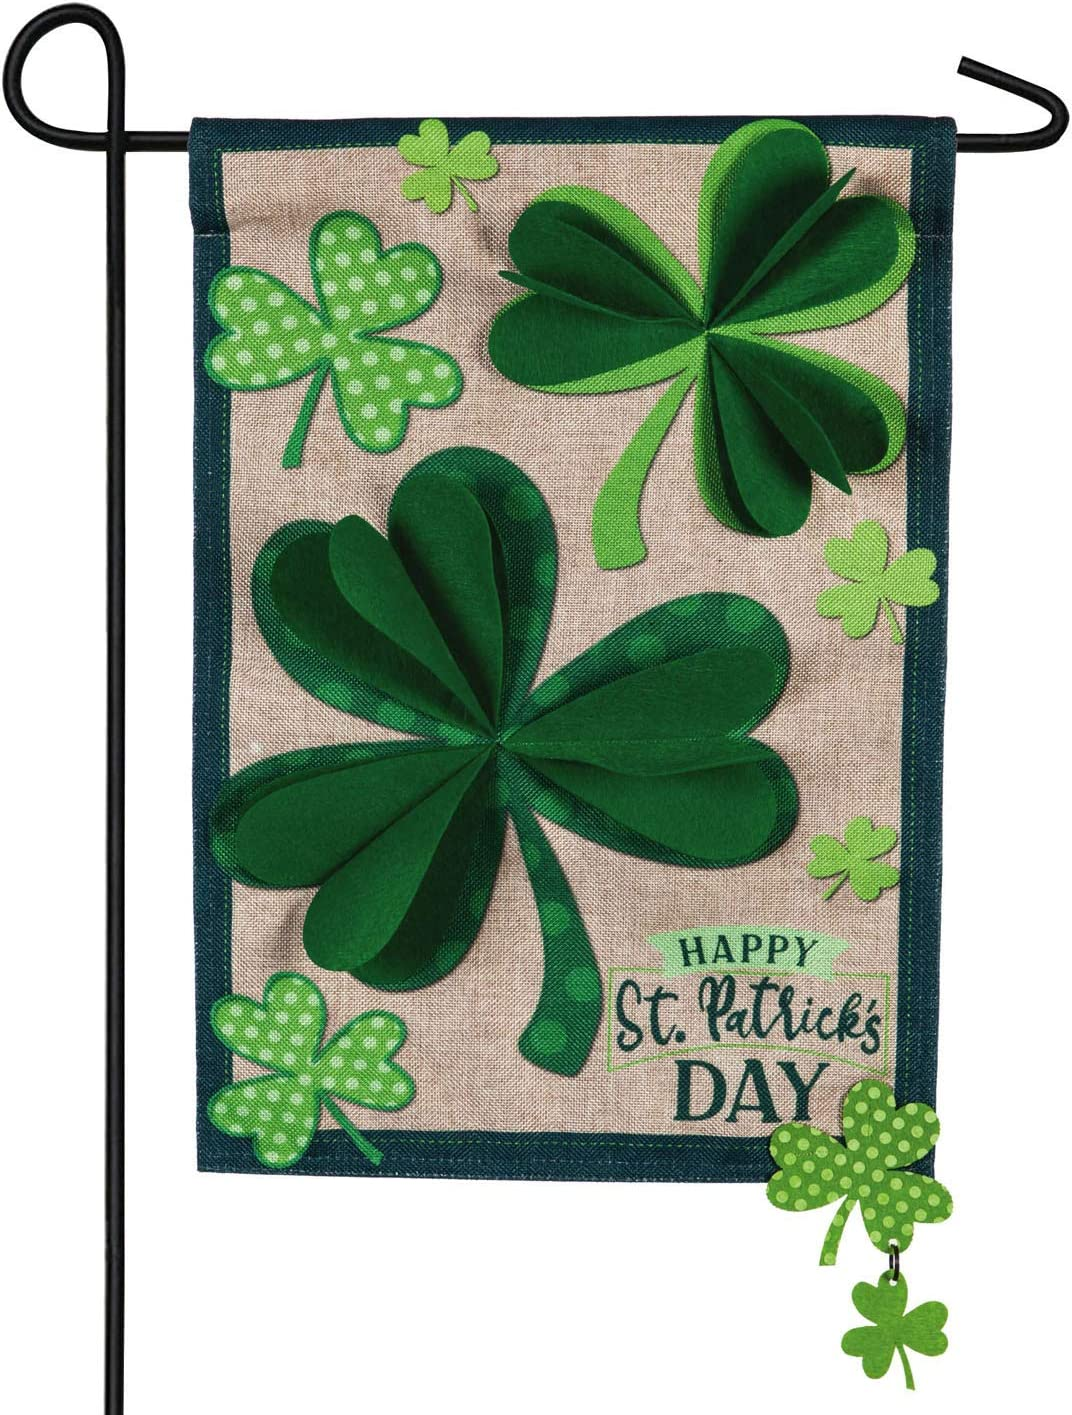 Evergreen Flag Shamrocks 3D Garden Burlap Flag - 12.5 x 18 Inches Outdoor Decor for Homes and Gardens